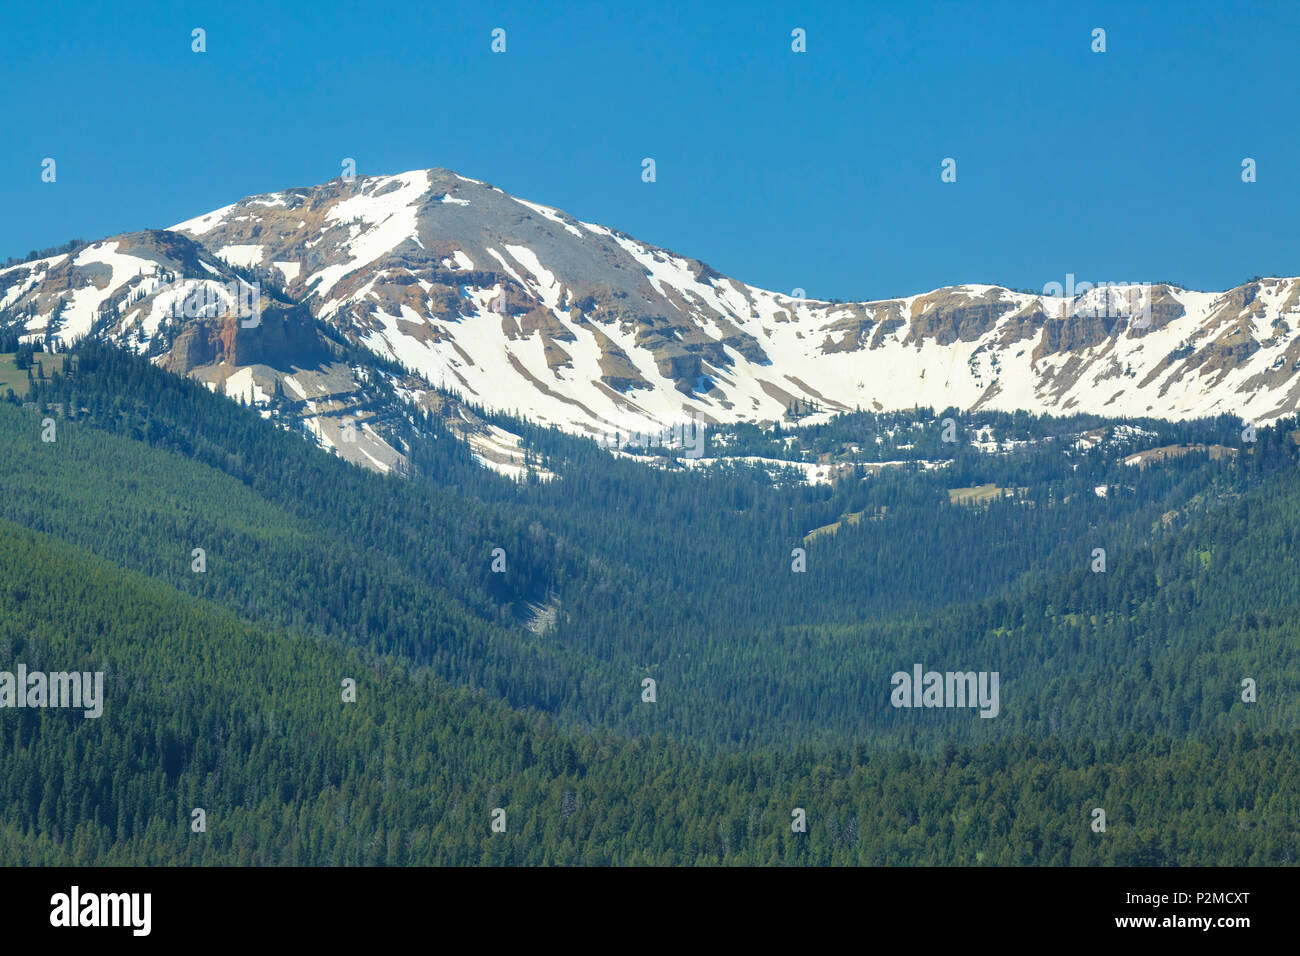 bald peak along the continental divide of the henrys lake mountains near west yellowstone, montana Stock Photo